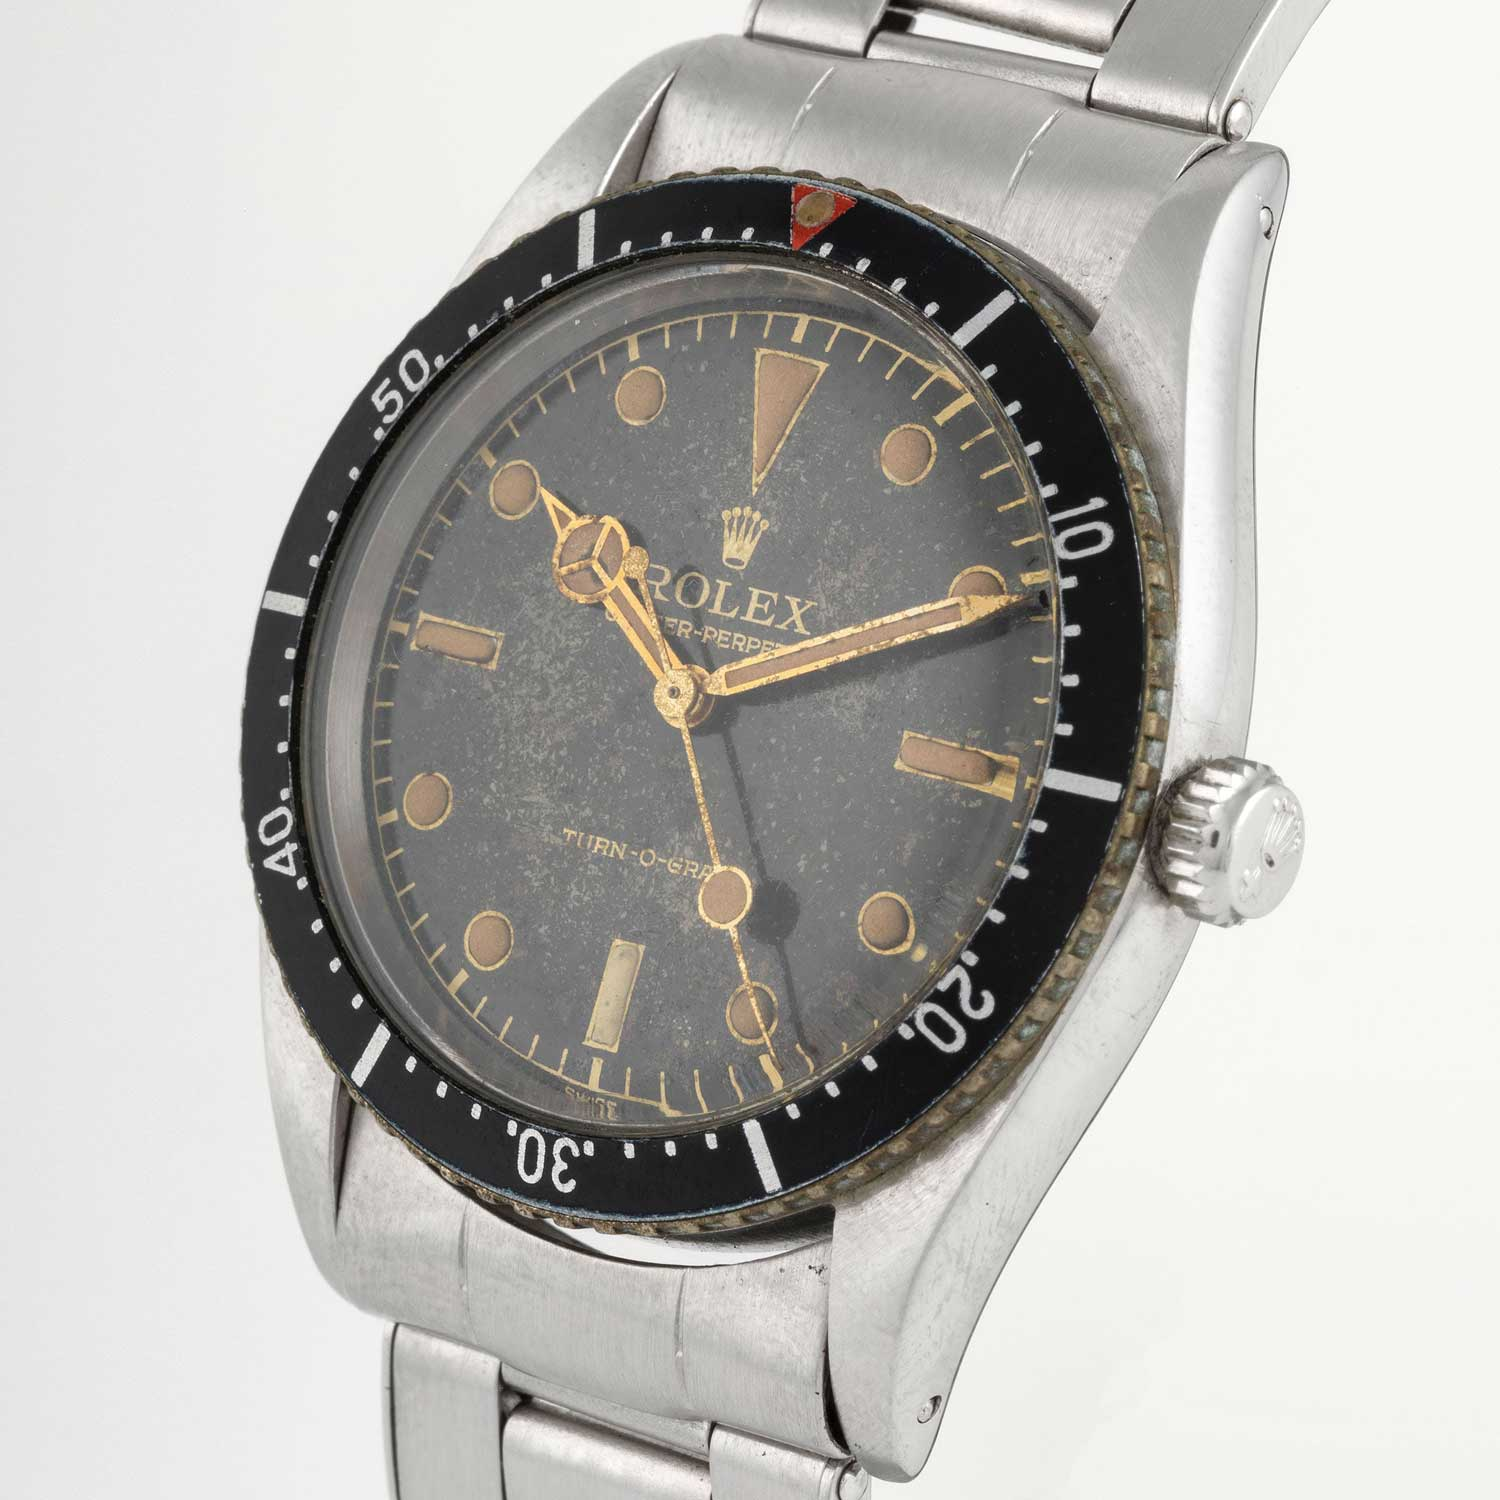 Lot 120 – Rolex Turn-O-Graph reference 6202